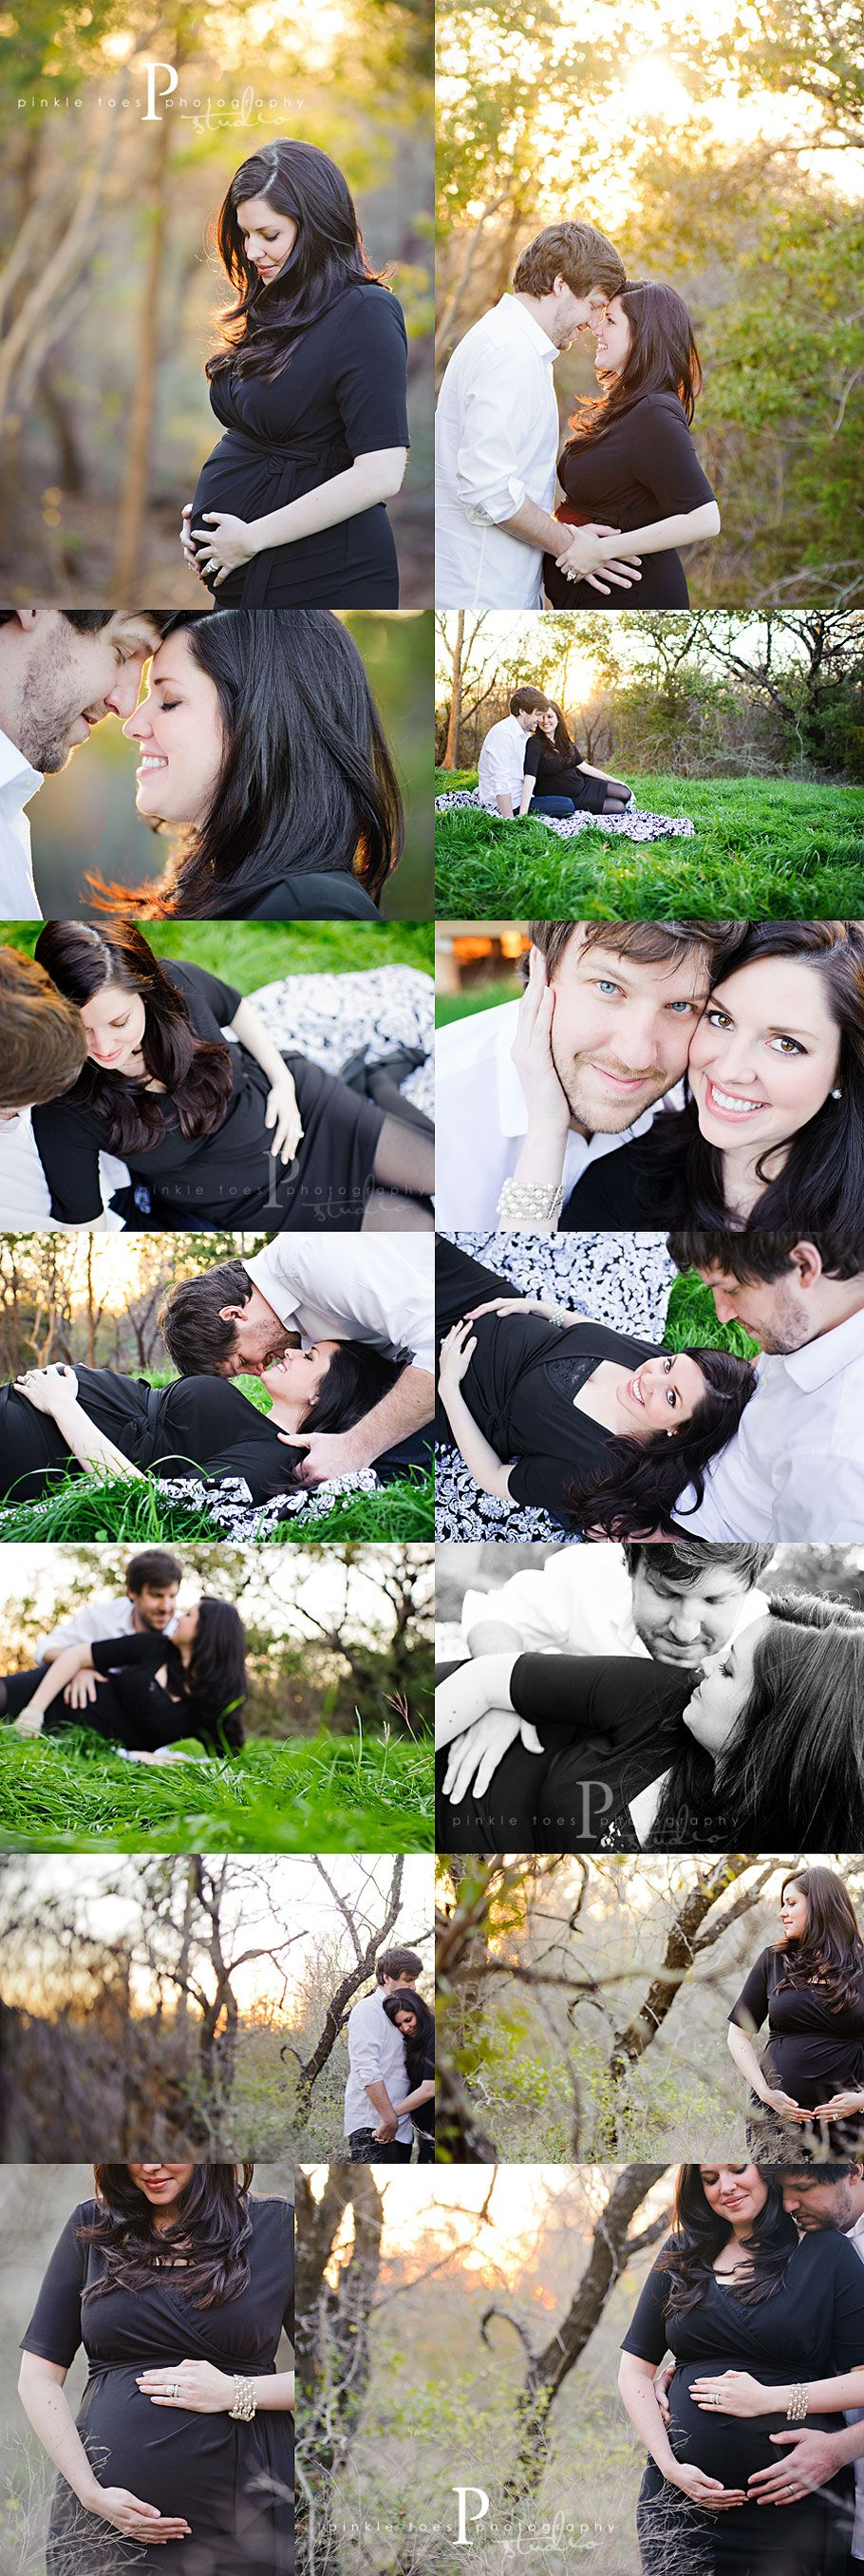 Green and glowing. - PINKLE TOES PHOTOGRAPHY - Austin's Family Photographer